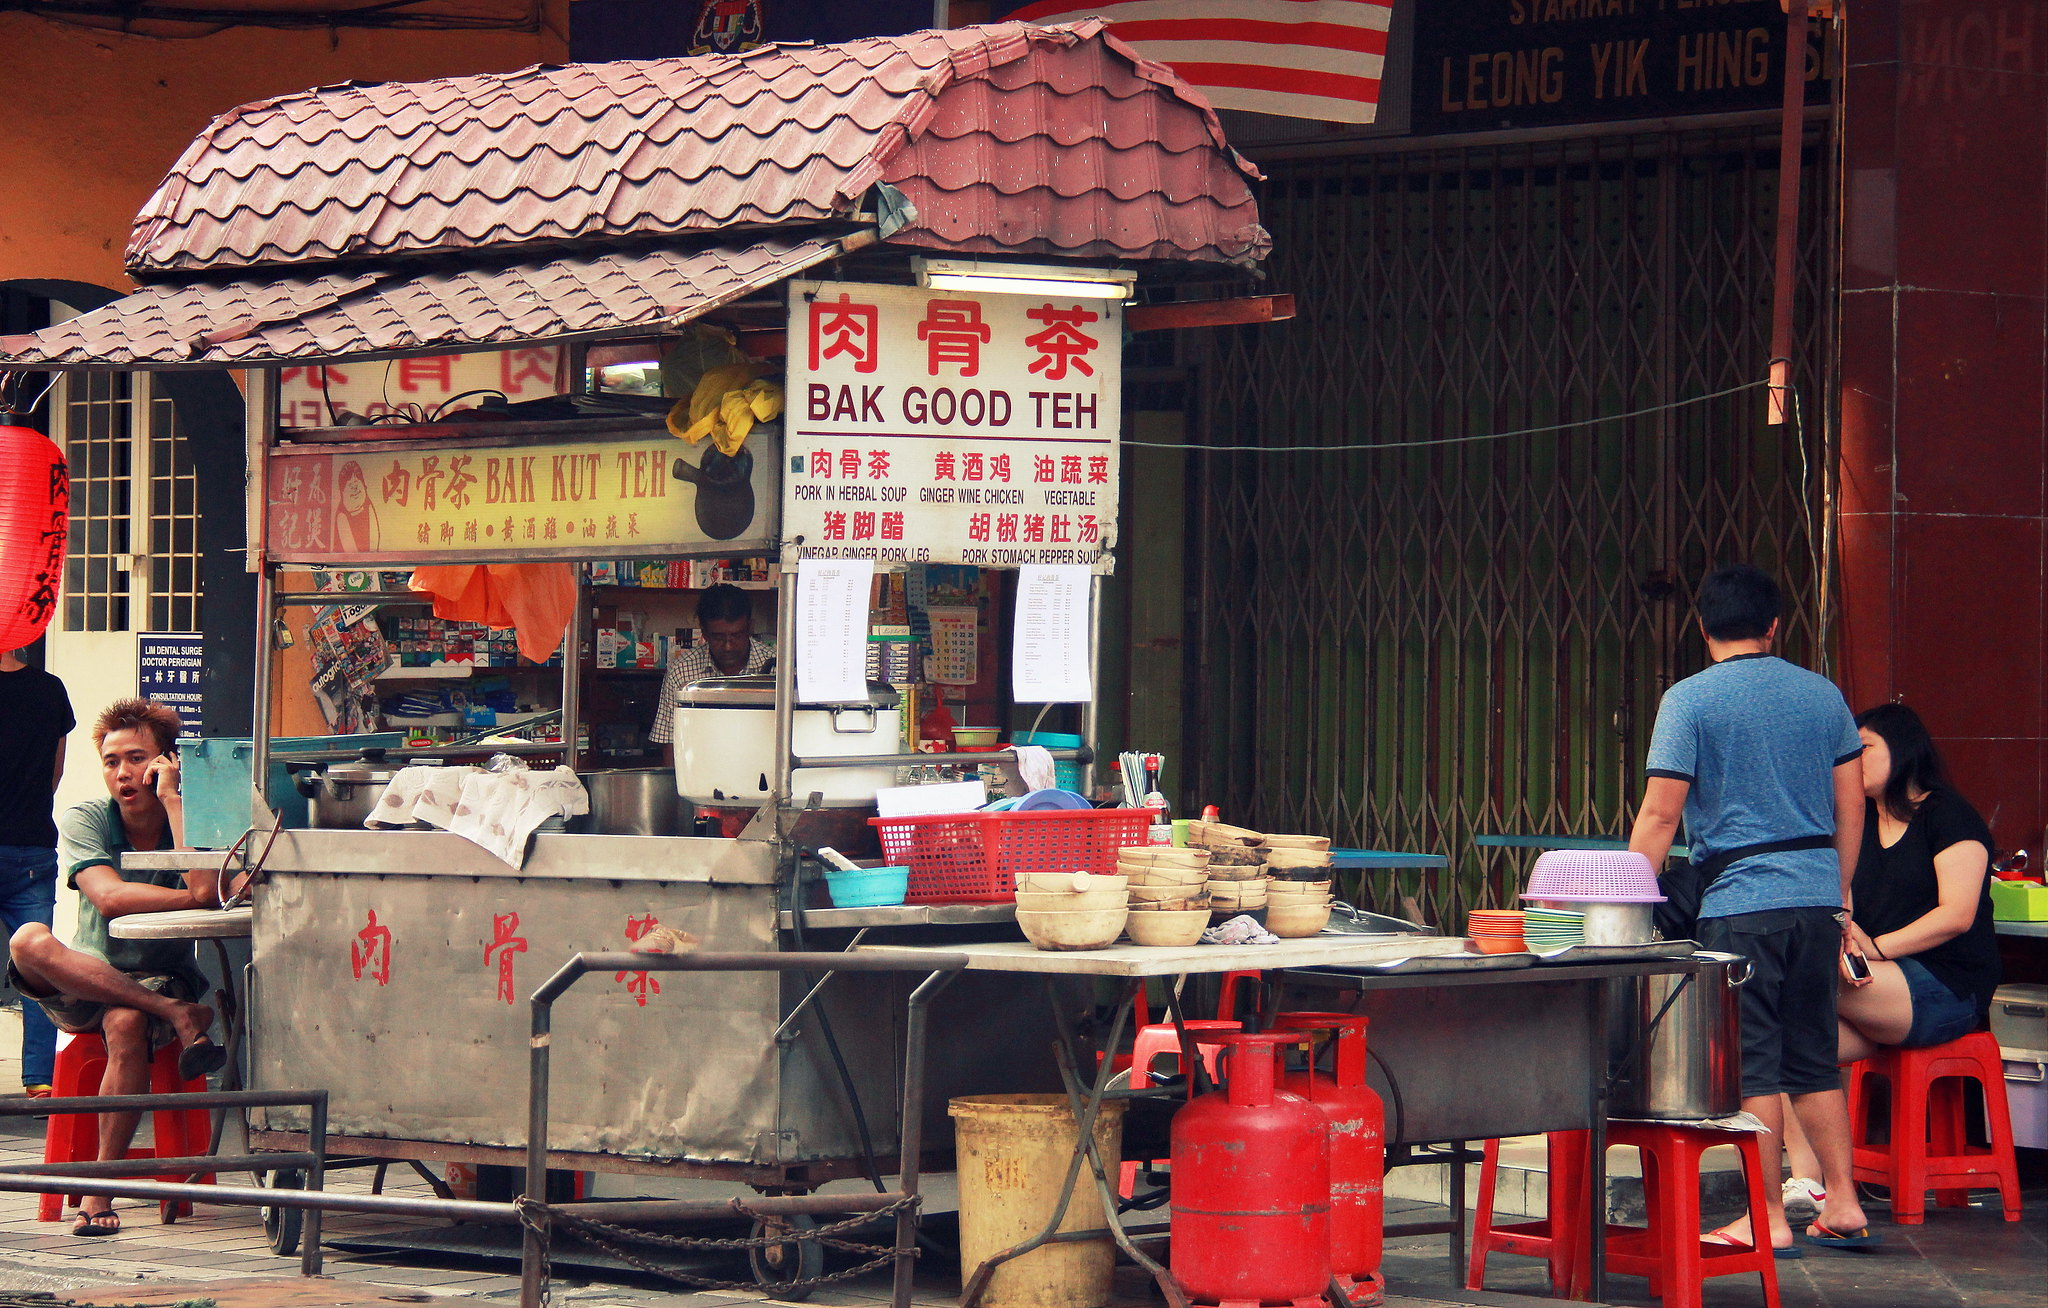 Street food is must try when you visit Kuala Lumpur